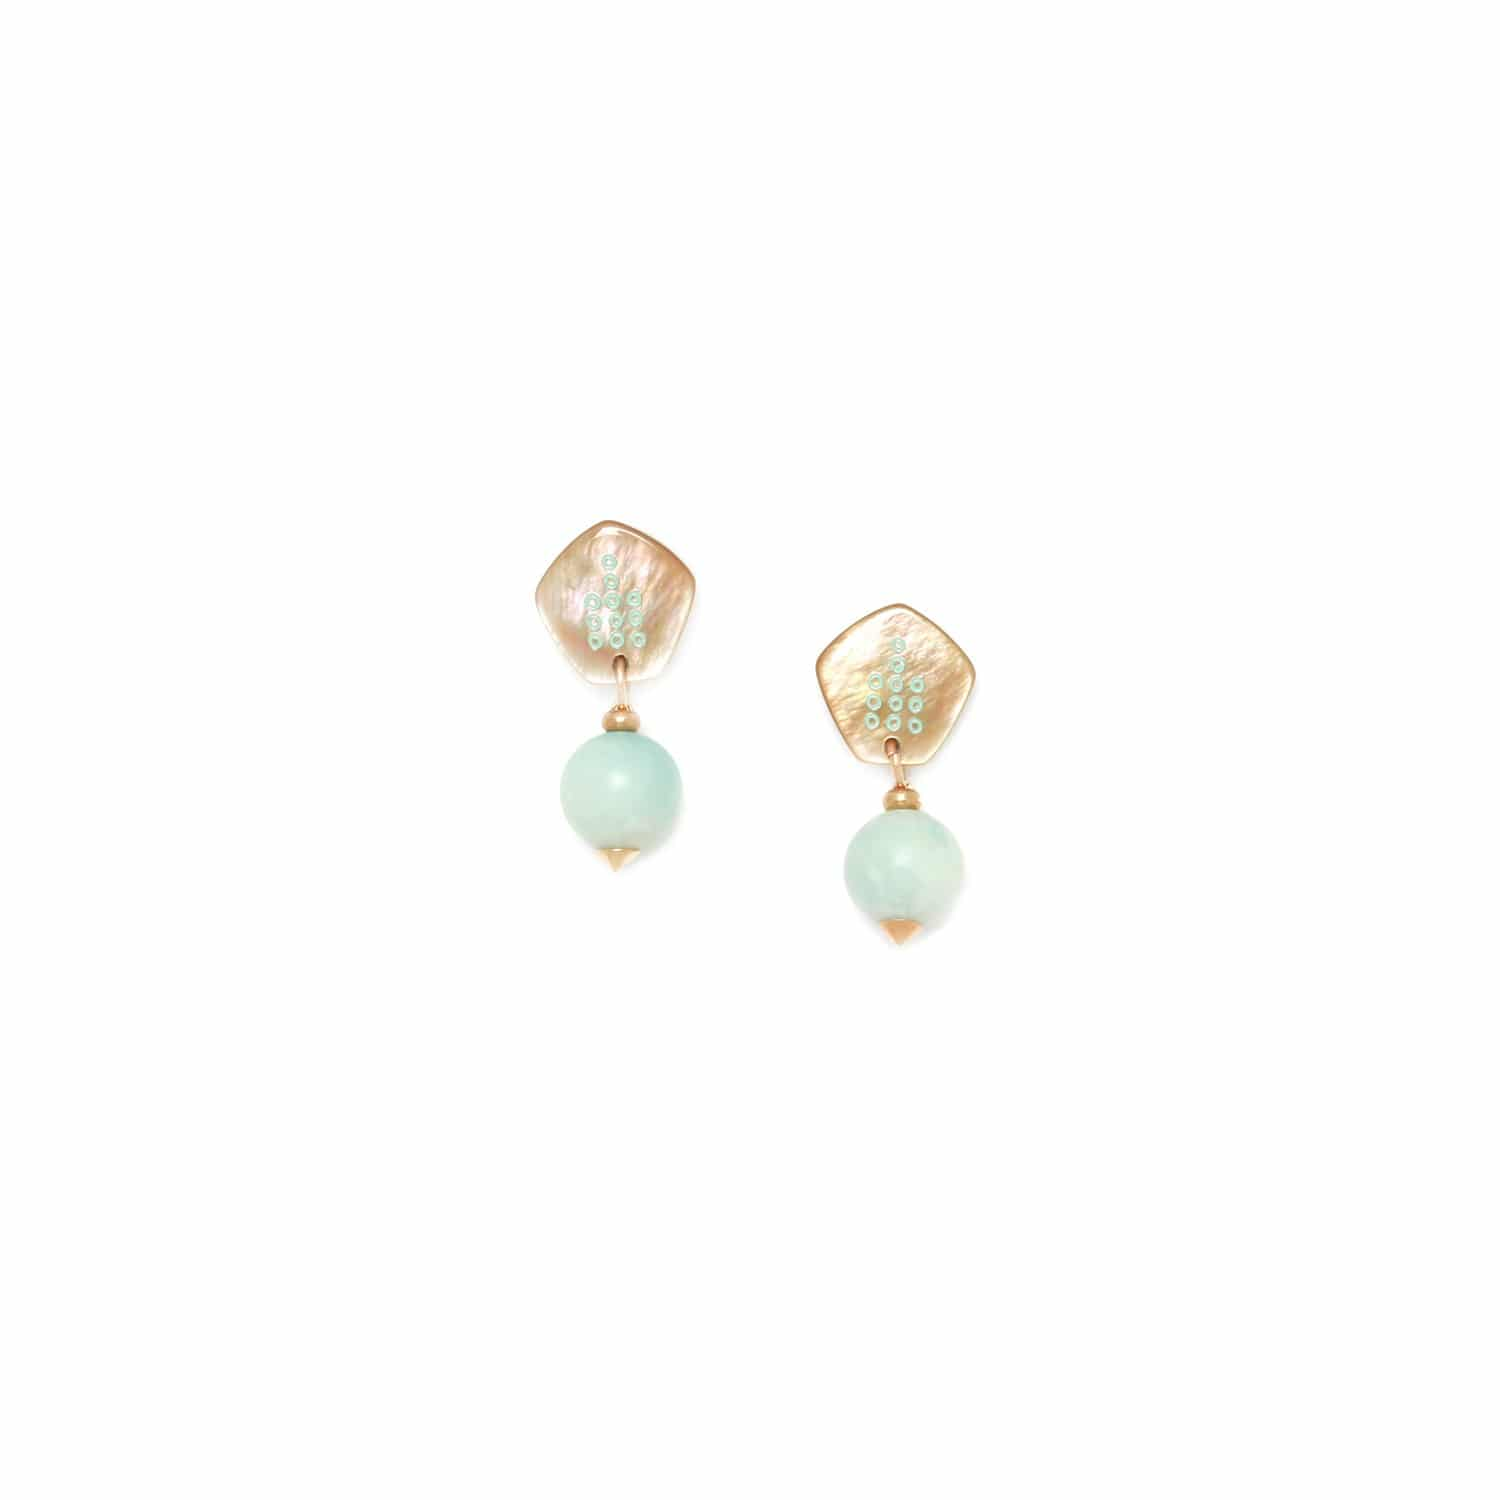 CELADON 12mm amazonite bead earrings